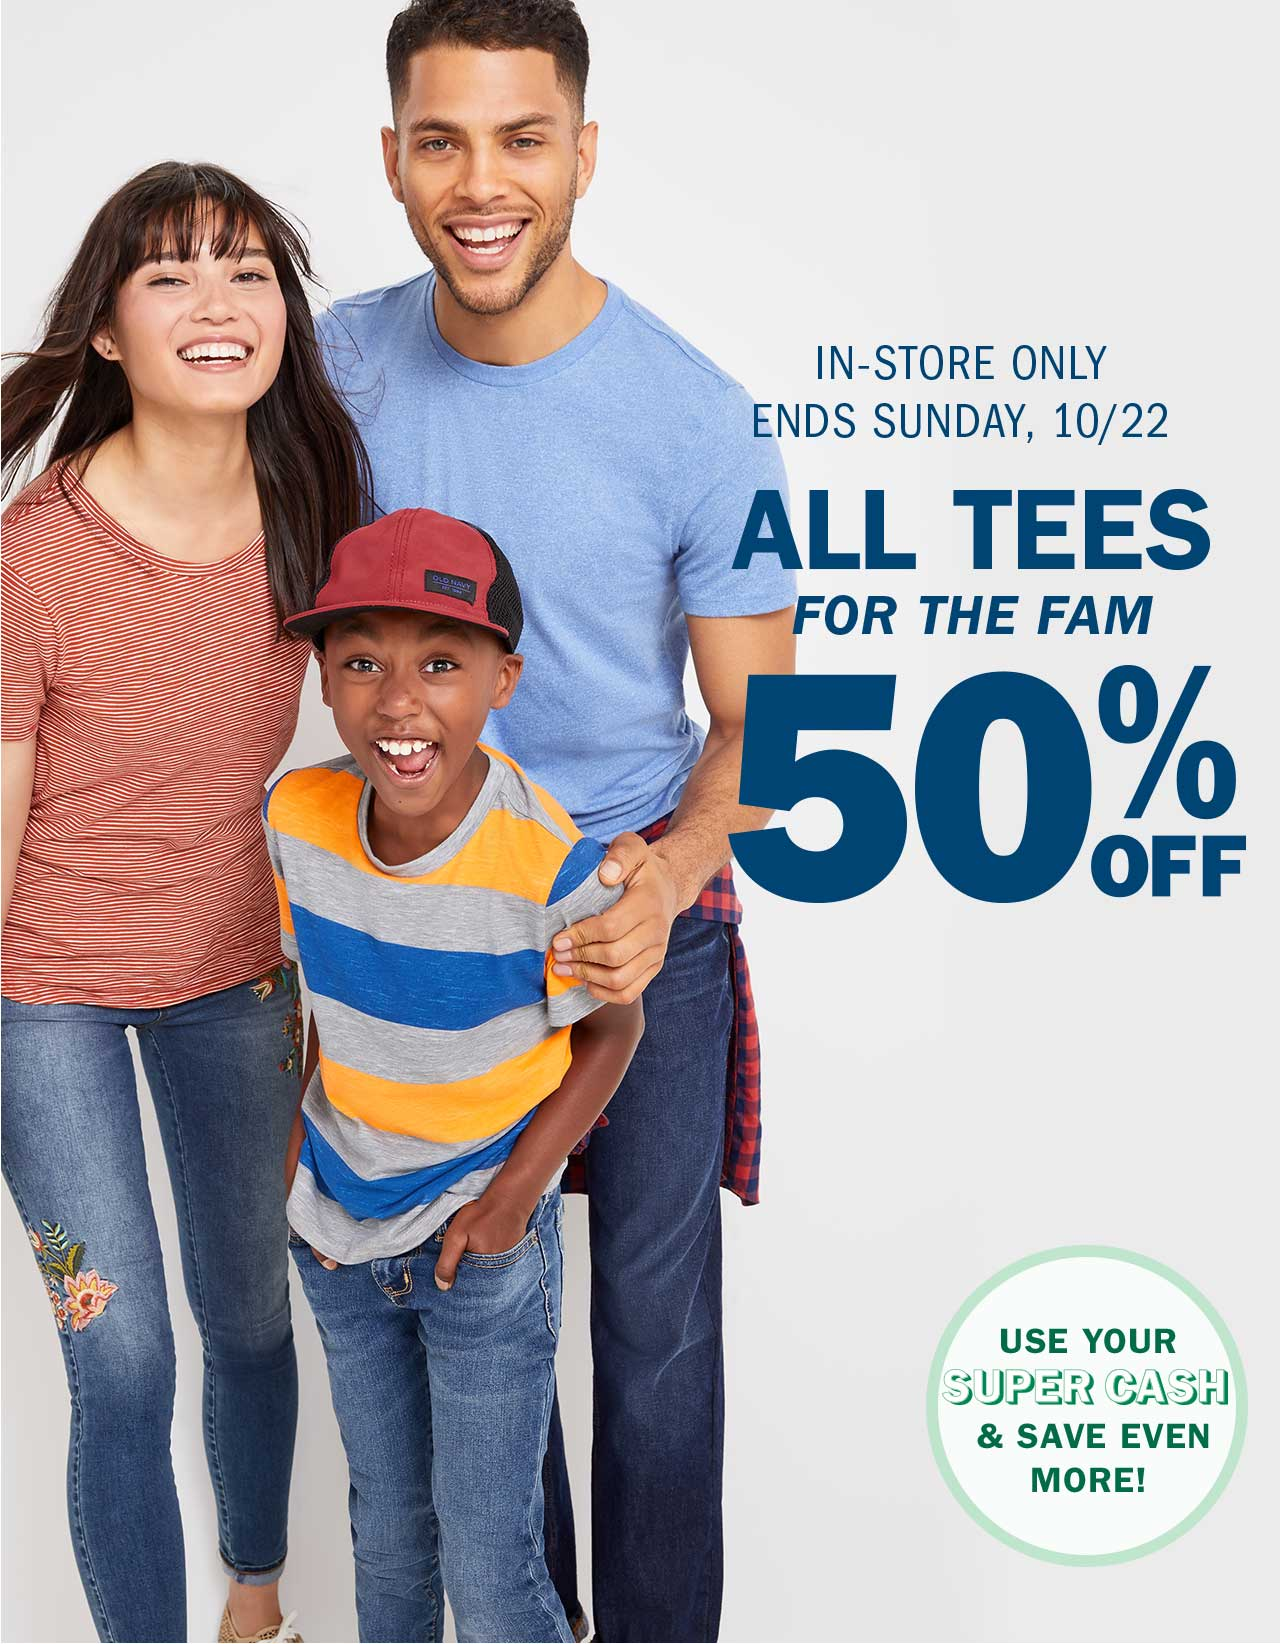 ALL TEES FOR THE FAM 50% OFF